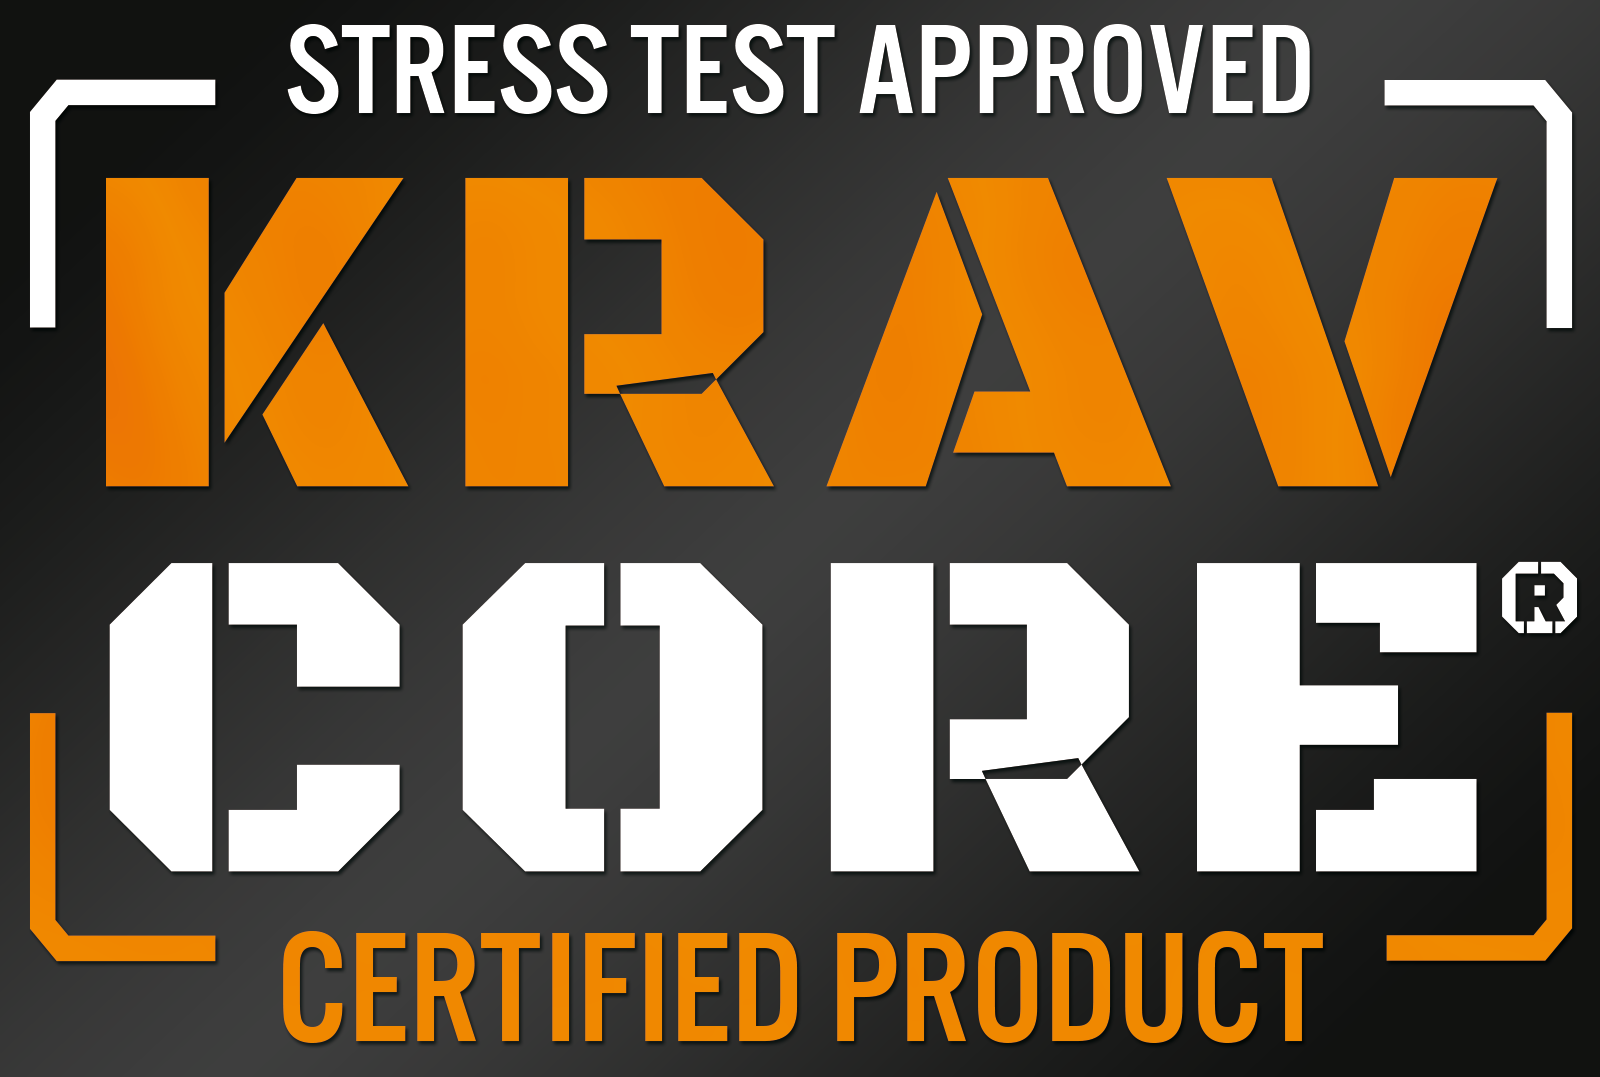 certified-product-stress-test-approved-krav-core